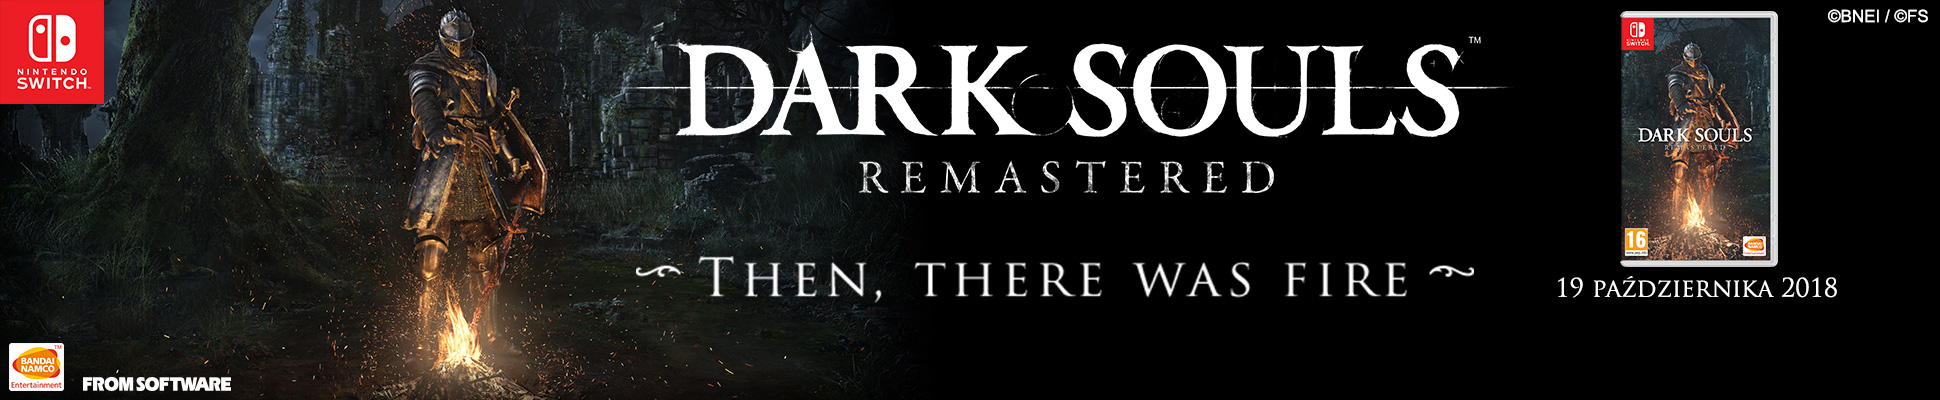 DARK SOULS NS